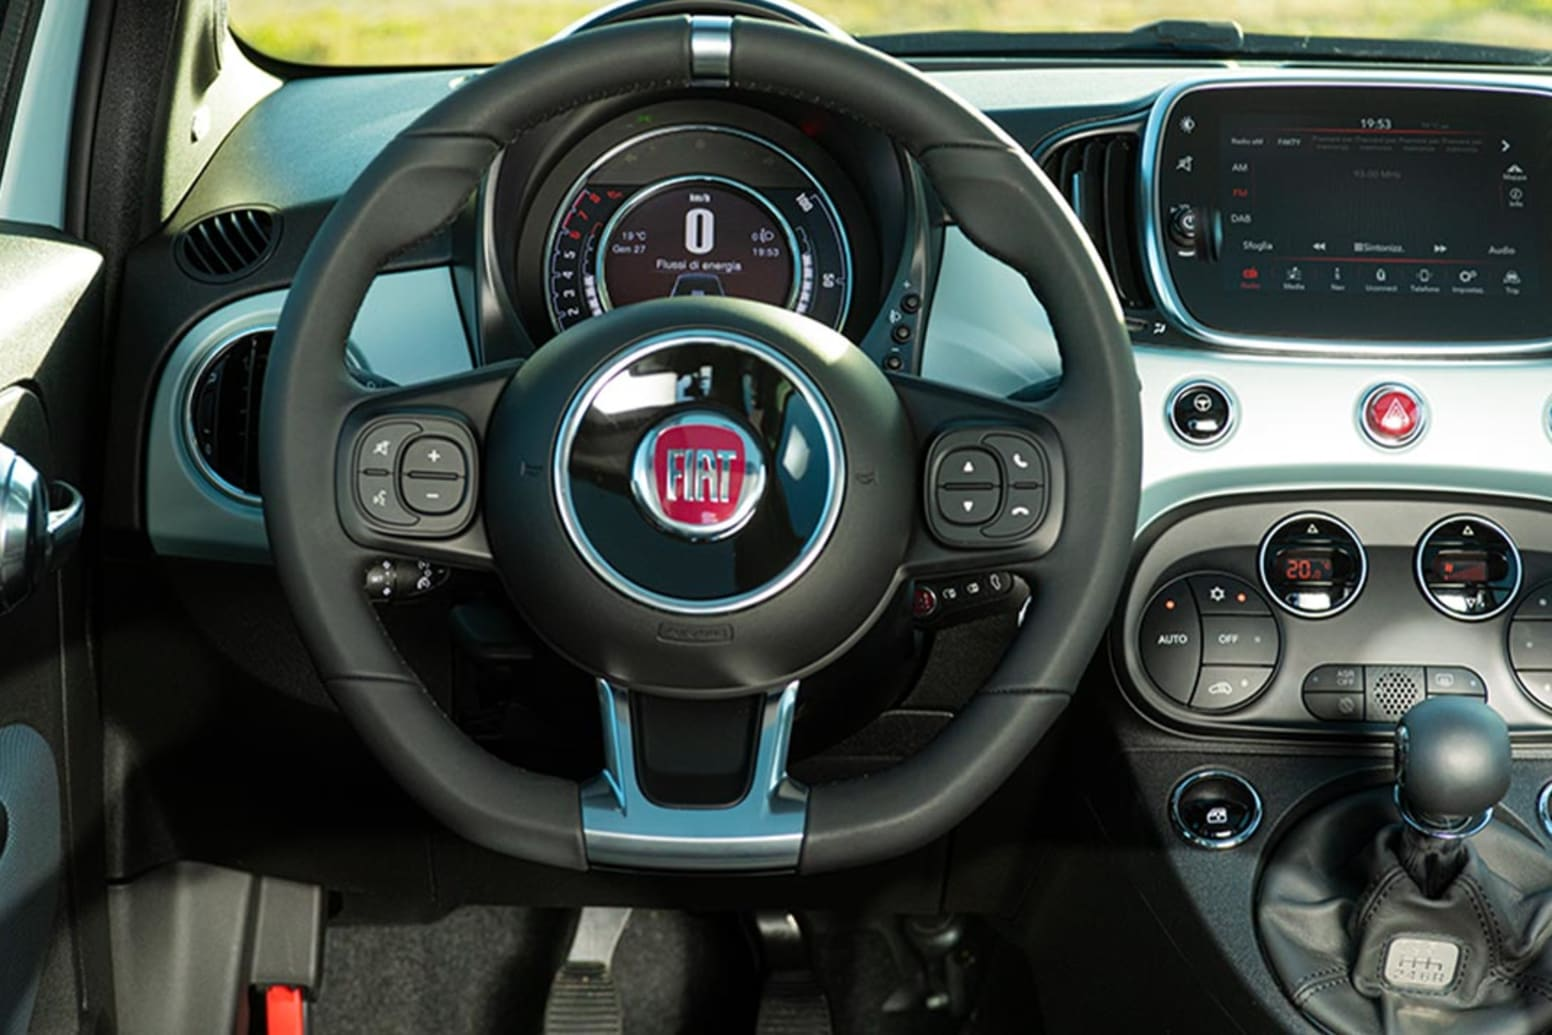 Fiat 500 Hybrid Interior Steering Wheel